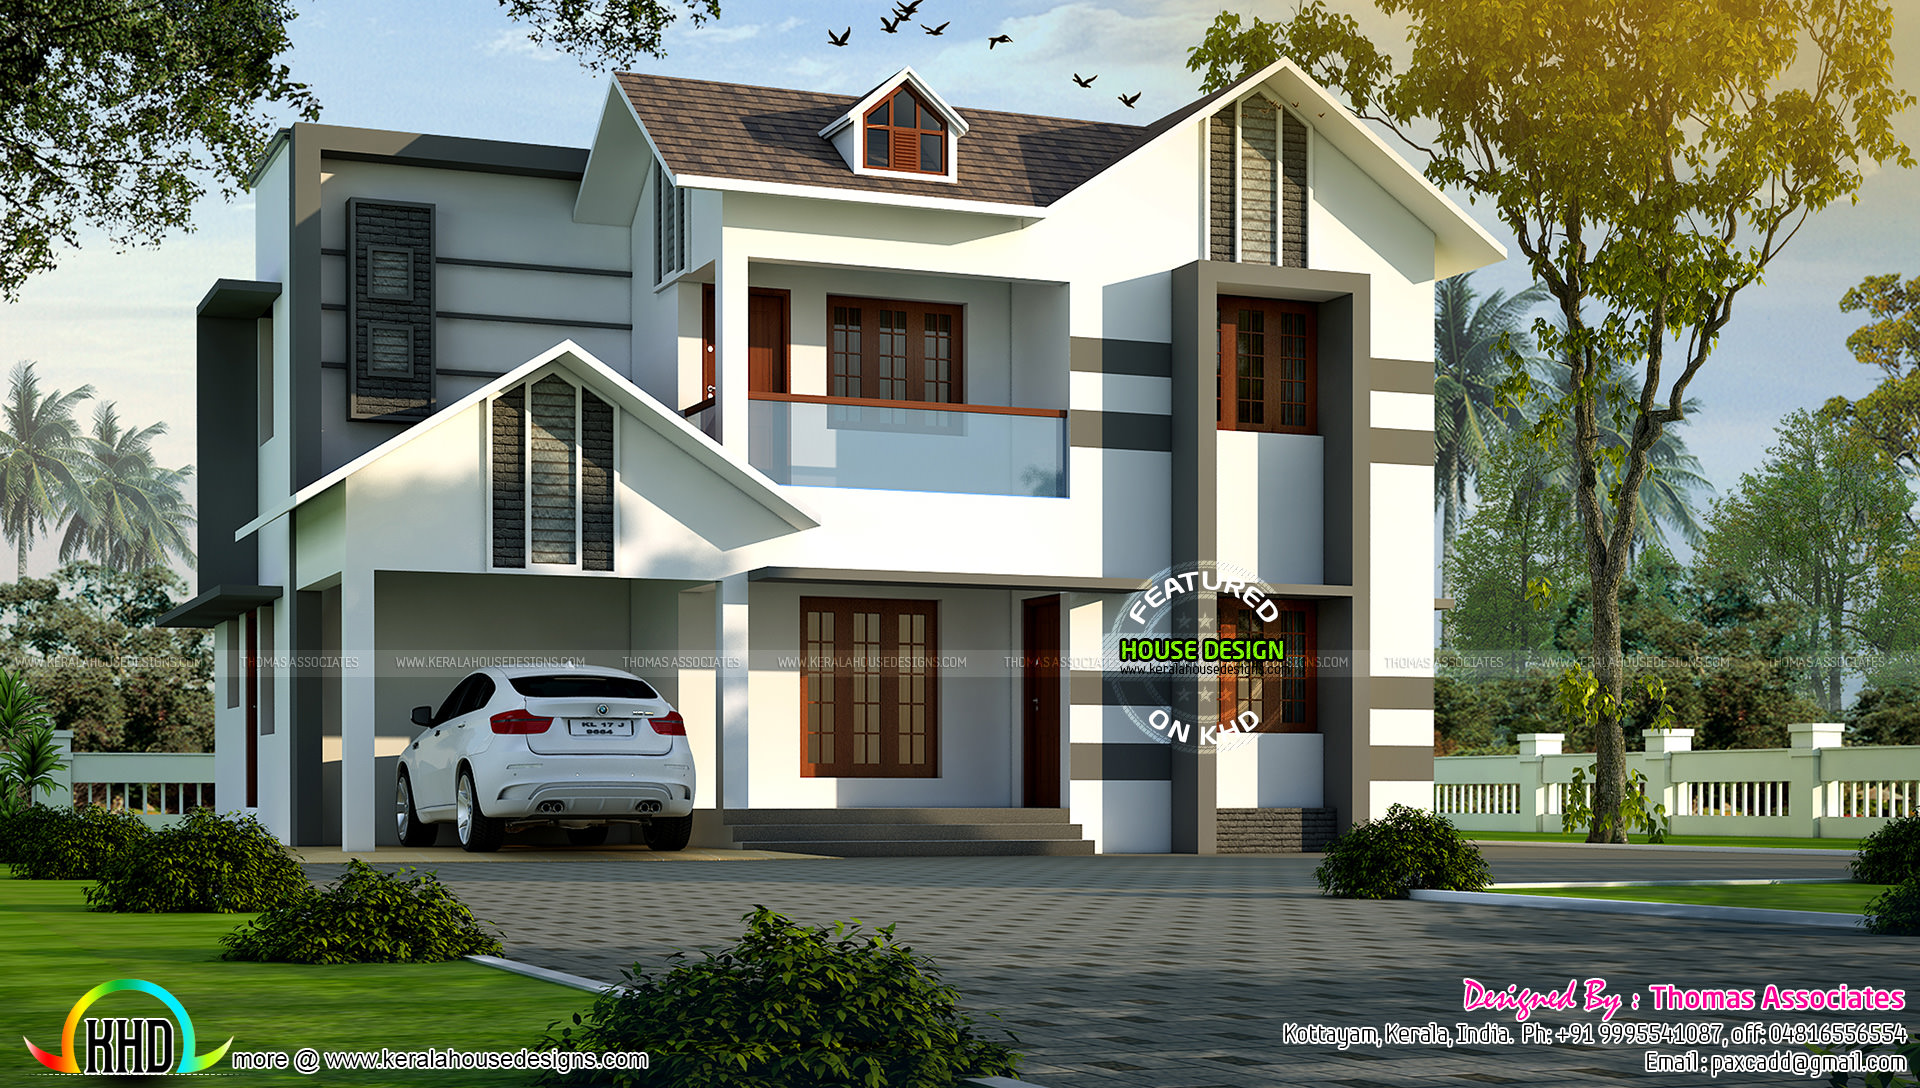 4 bhk villa in 1850 sq ft kerala home design and floor plans for 4 bhk villa interior design